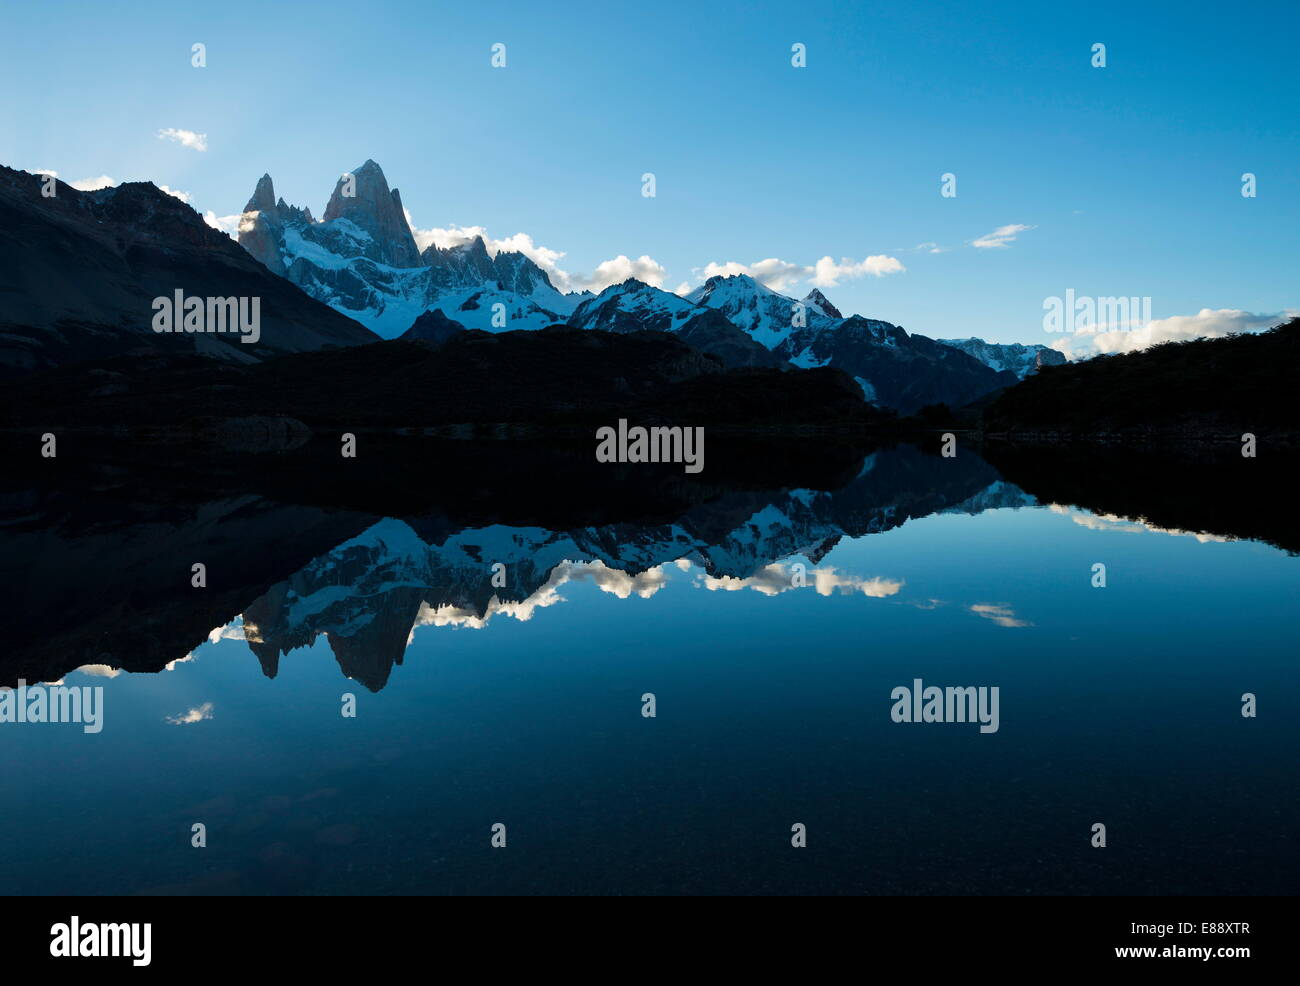 Fitz Roy, Laguna Capri, Parc National Los Glaciares, Site de l'UNESCO, Province de Santa Cruz, Argentine Photo Stock